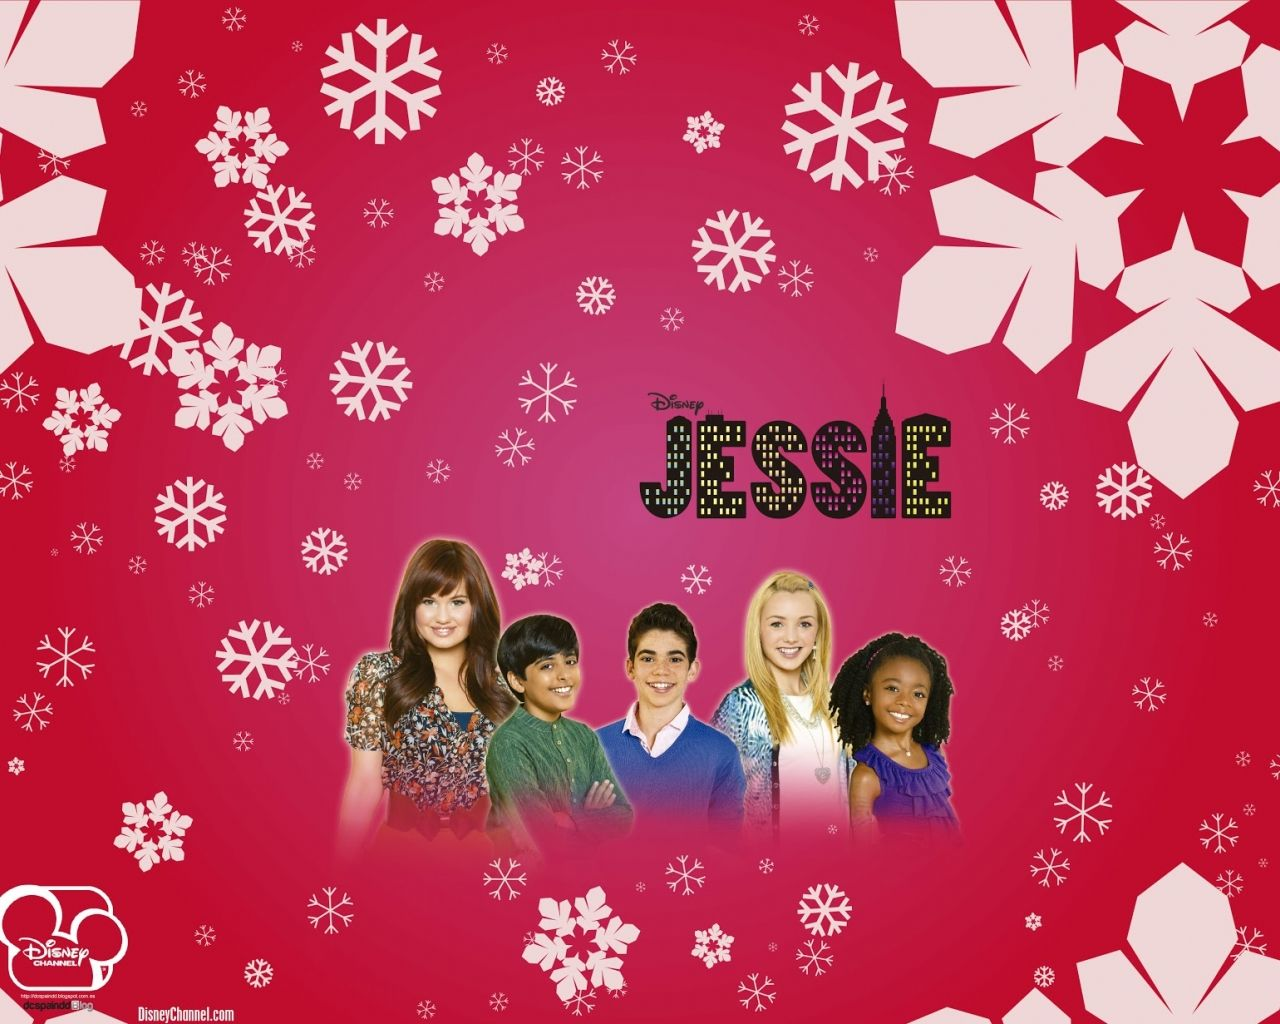 Jessie Wallpapers Disney Channel